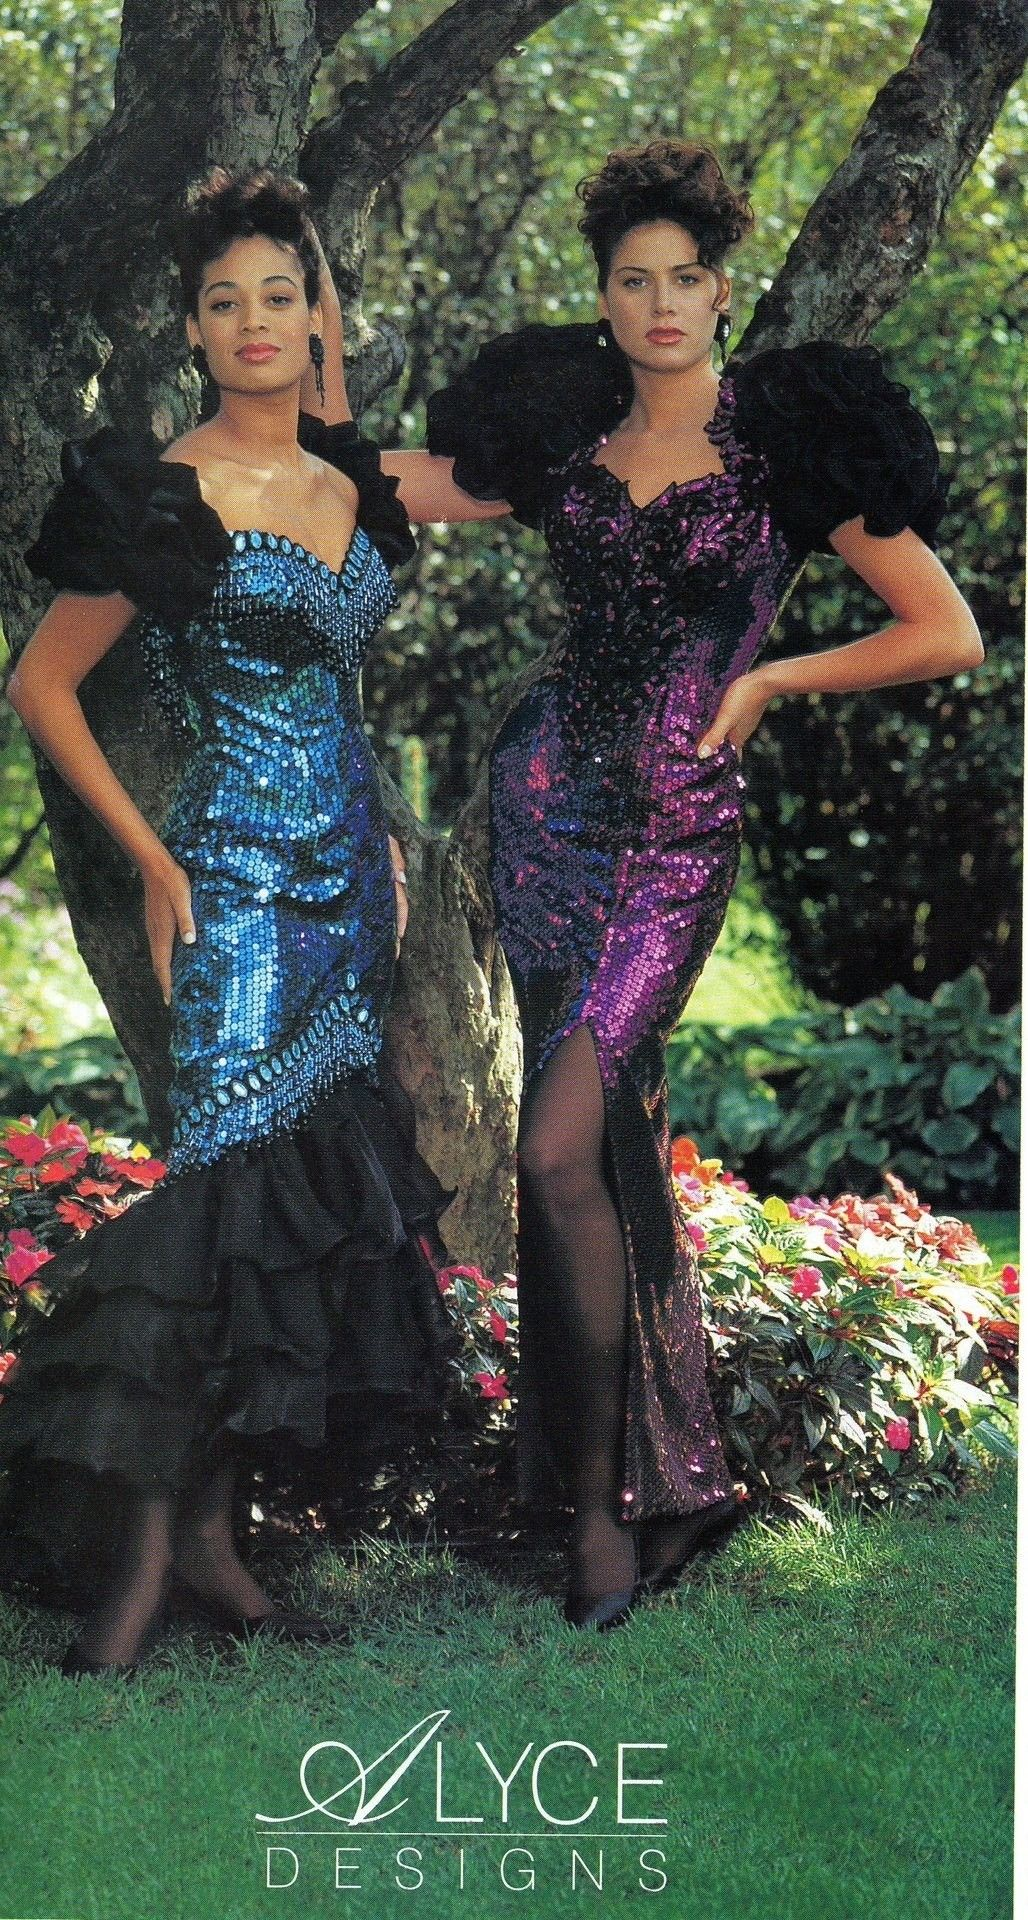 21 Times 90s Fashion Brands Went Way Way Too Far Worst Prom Dresses Fashion Gothic Prom Dress [ 1920 x 1028 Pixel ]